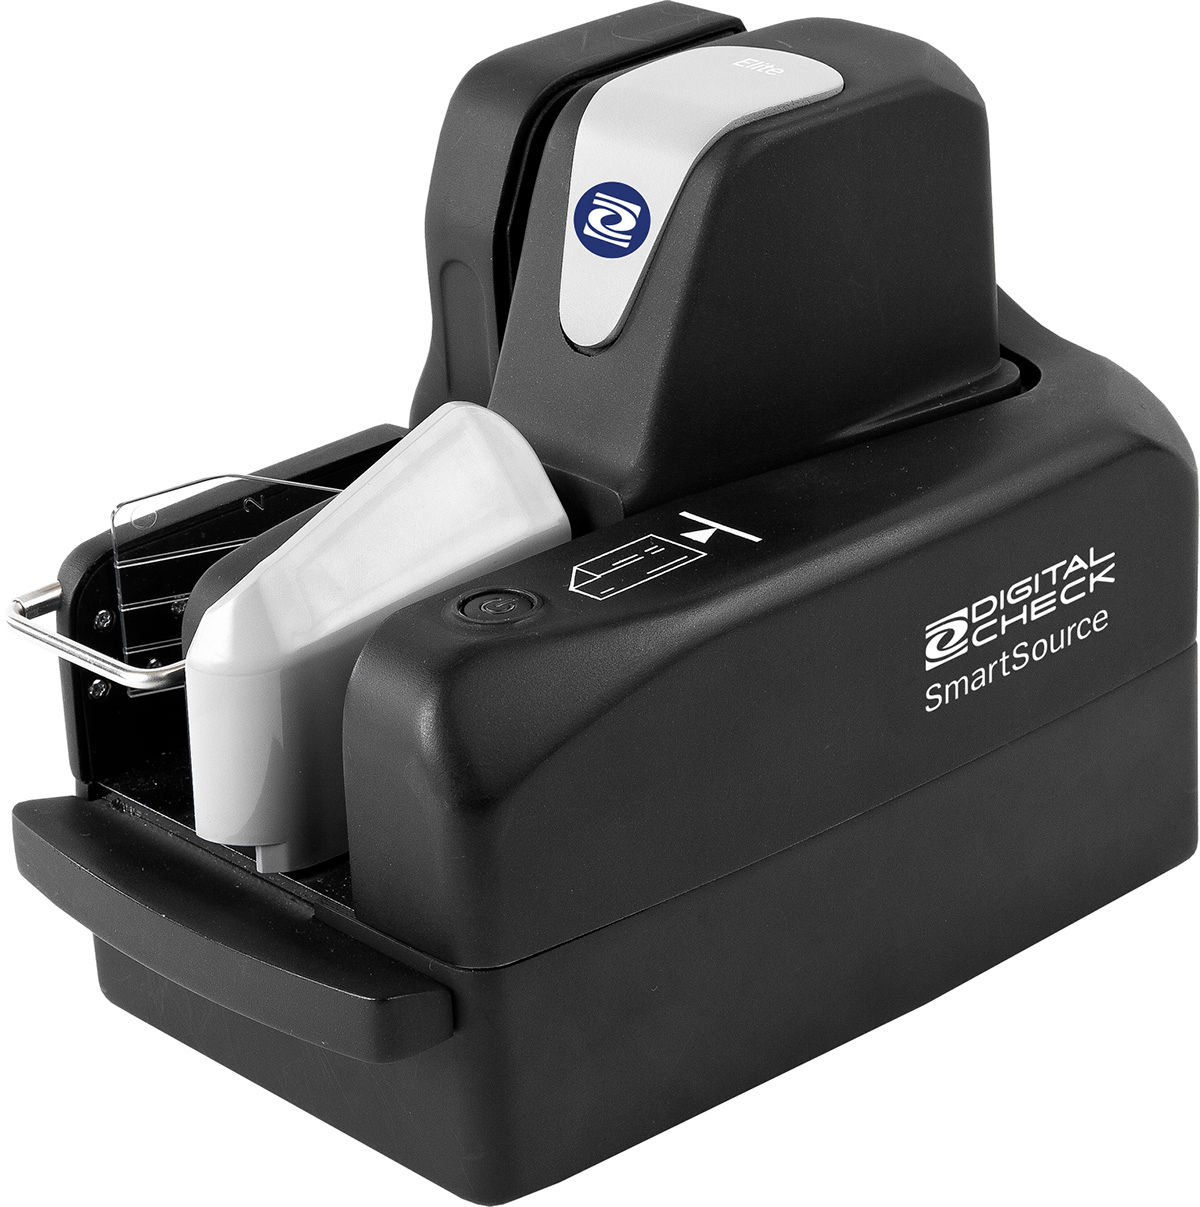 Digital Check SmartSource Pro Elite Scanner